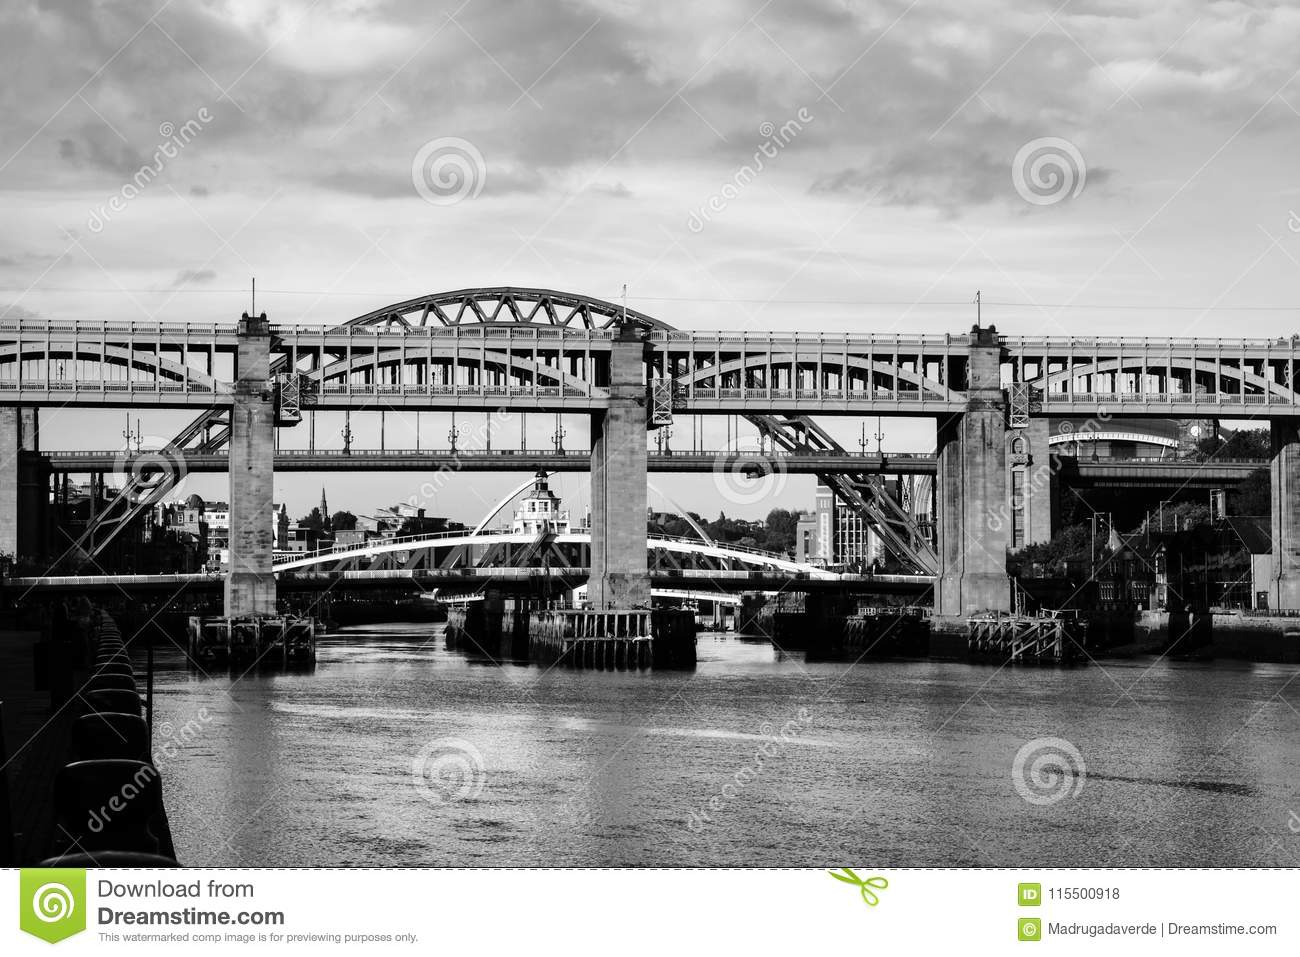 The high level bridge in newcastle upon tyne uk over river tyne during daytime with the tyne bridge behind it cloudy sky black and white